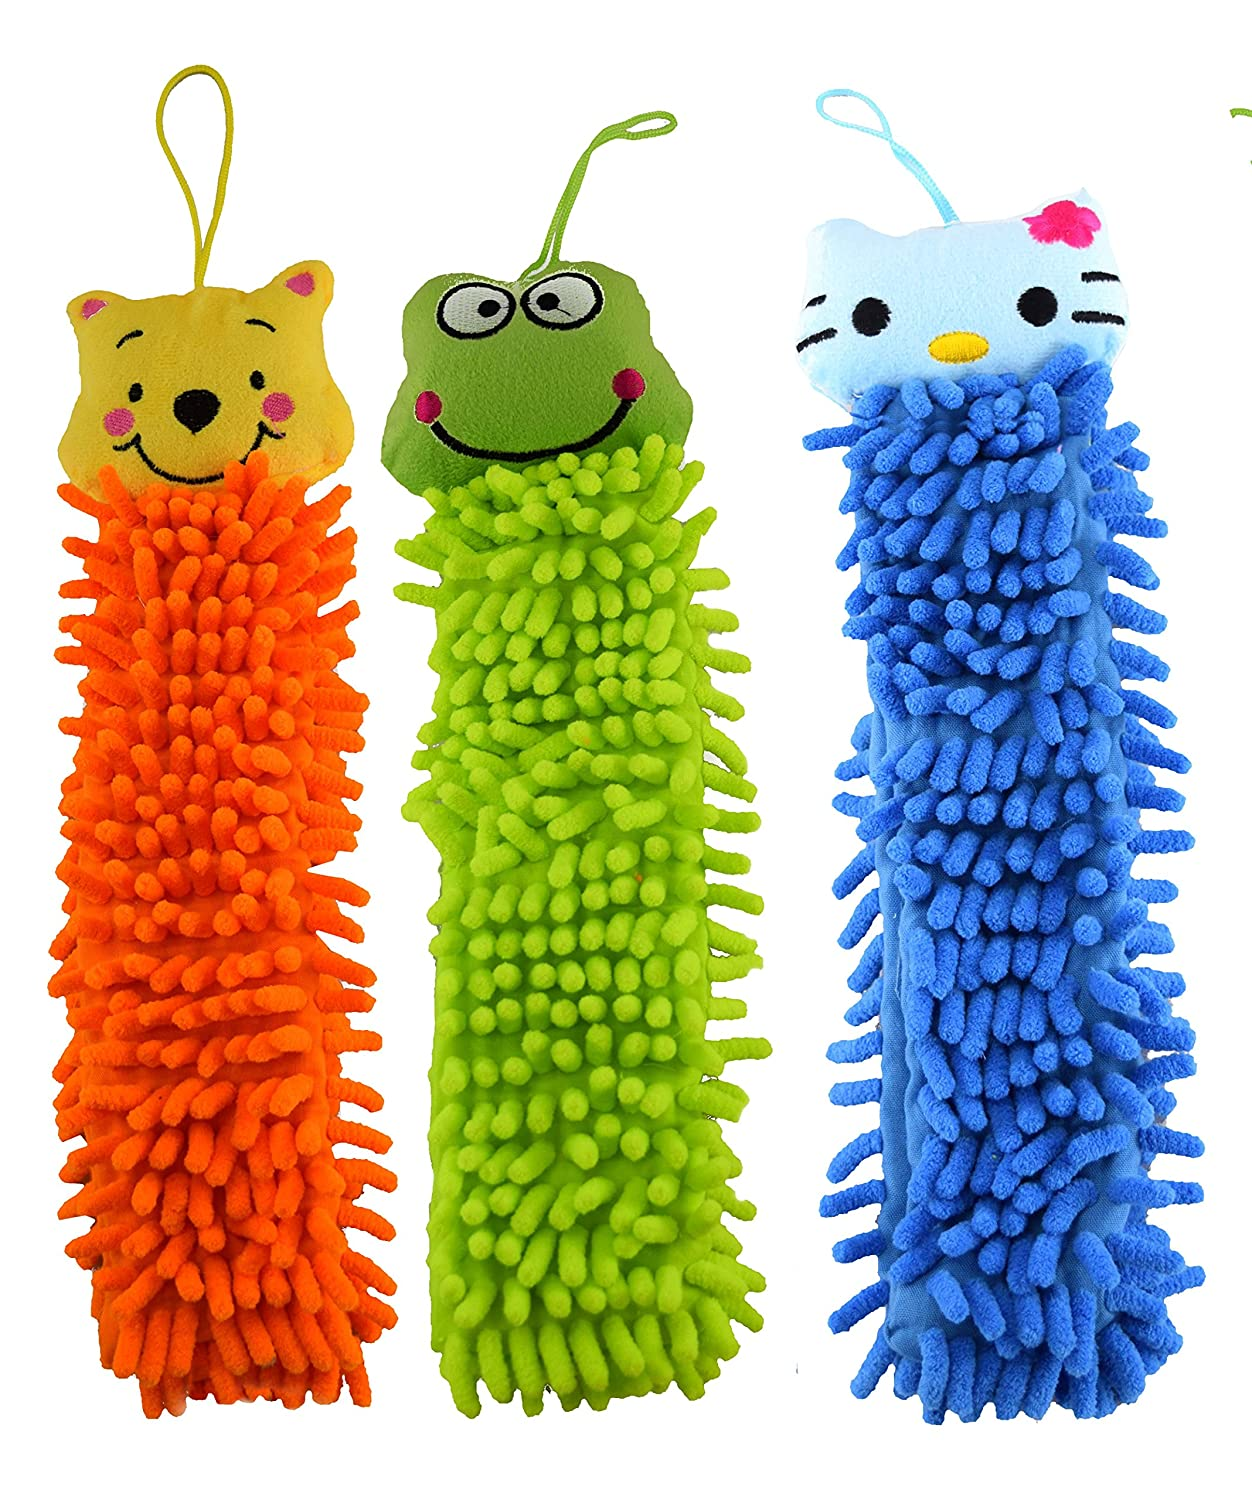 Rangebow Pack of 3 mix Colour Mix Random Pattern Microfiber Hanging Hand Towels for Kids, Animal Face Fingertip Towels, Soft Chenille Gothi Creations RBHT01